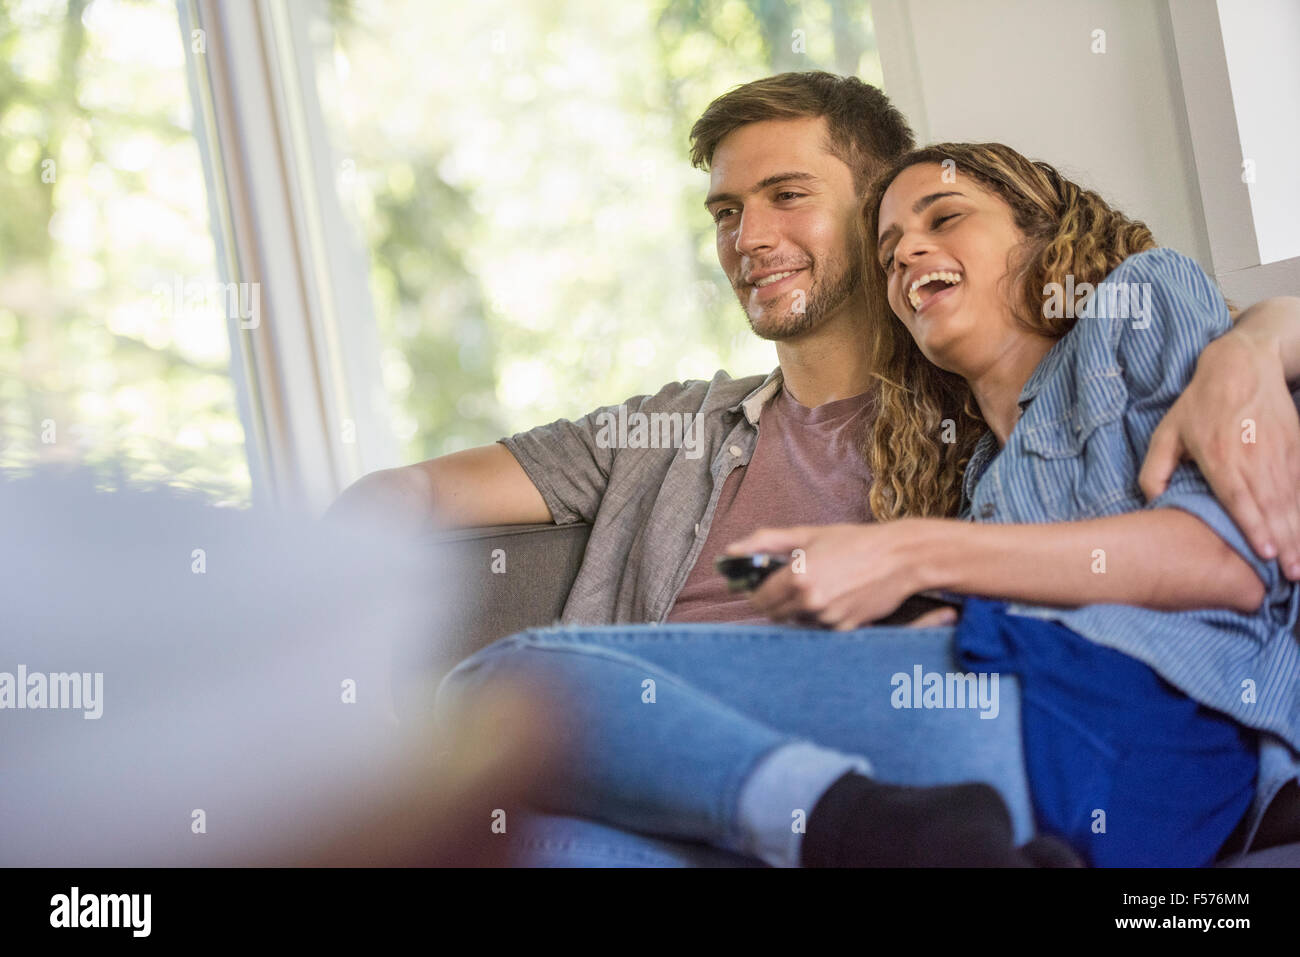 A couple, a man and woman sitting side by side laughing, watching a screen. - Stock Image